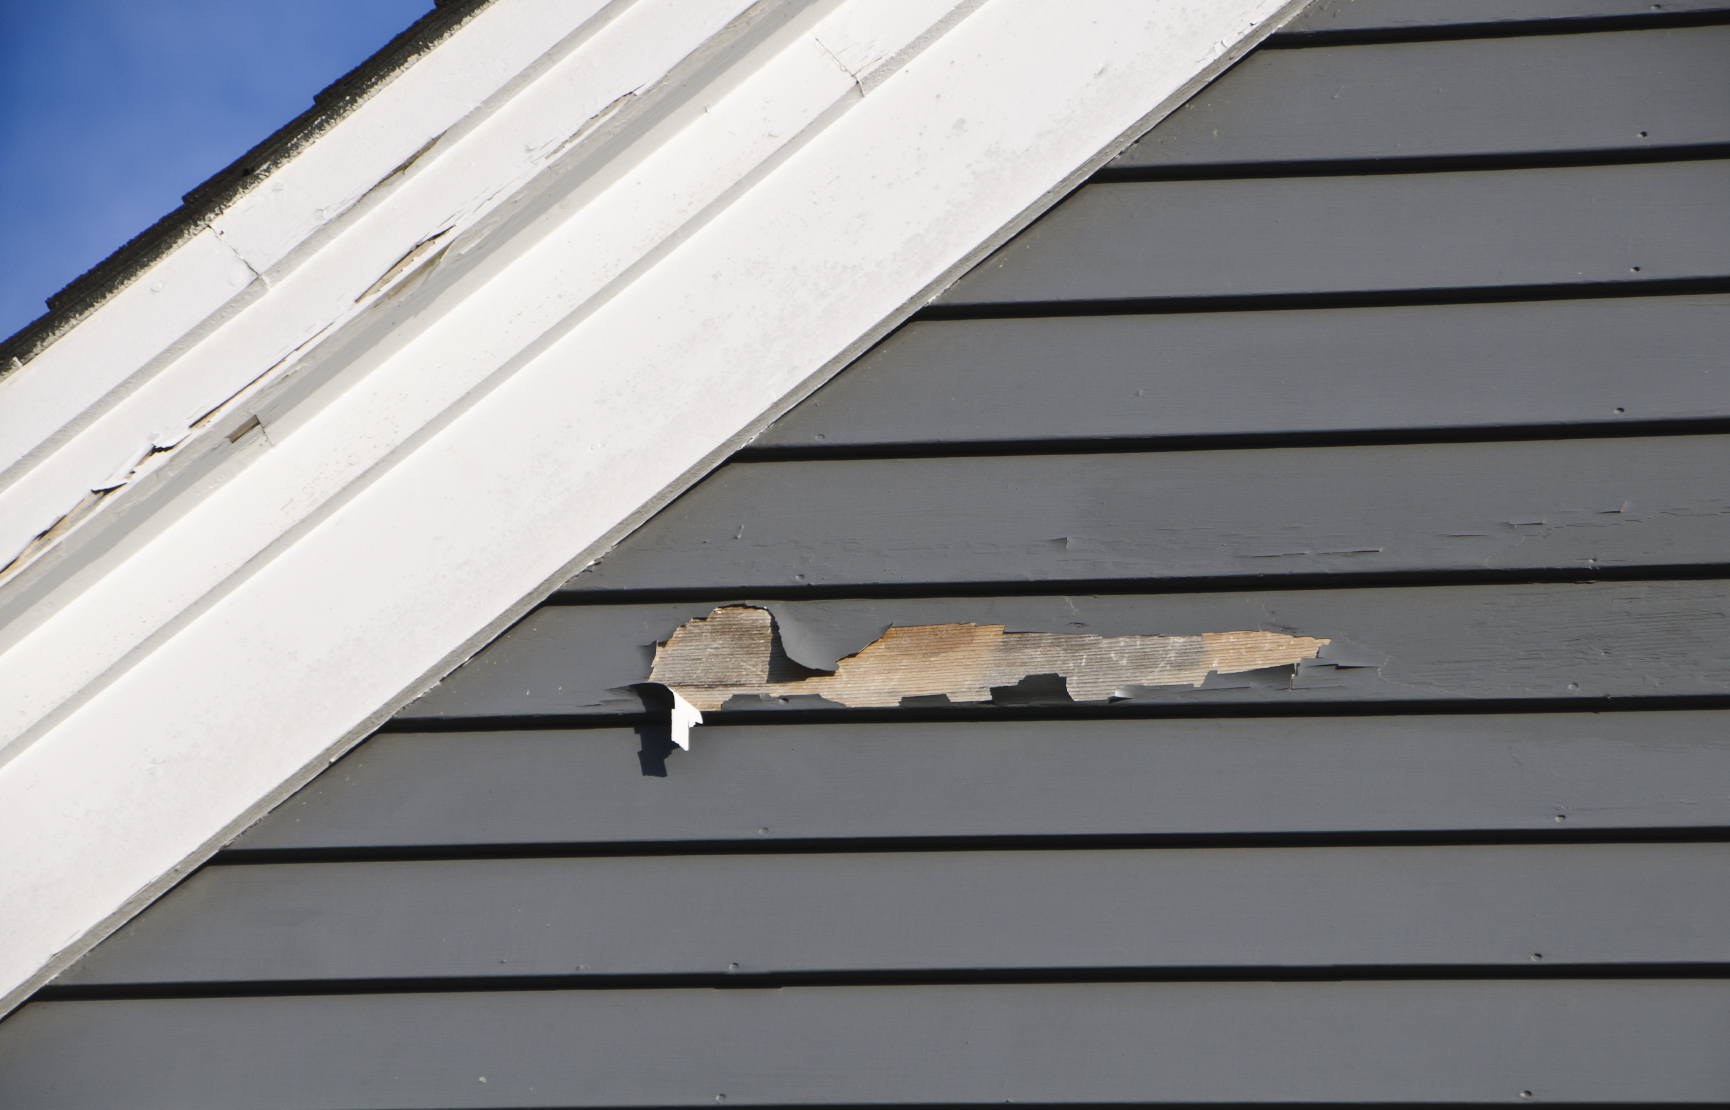 Peeling on cedar siding probably due to either poor paint application or a moisture behind the siding this unsightly peeling and cracking will have to be scraped, sanded, primed and repainted.